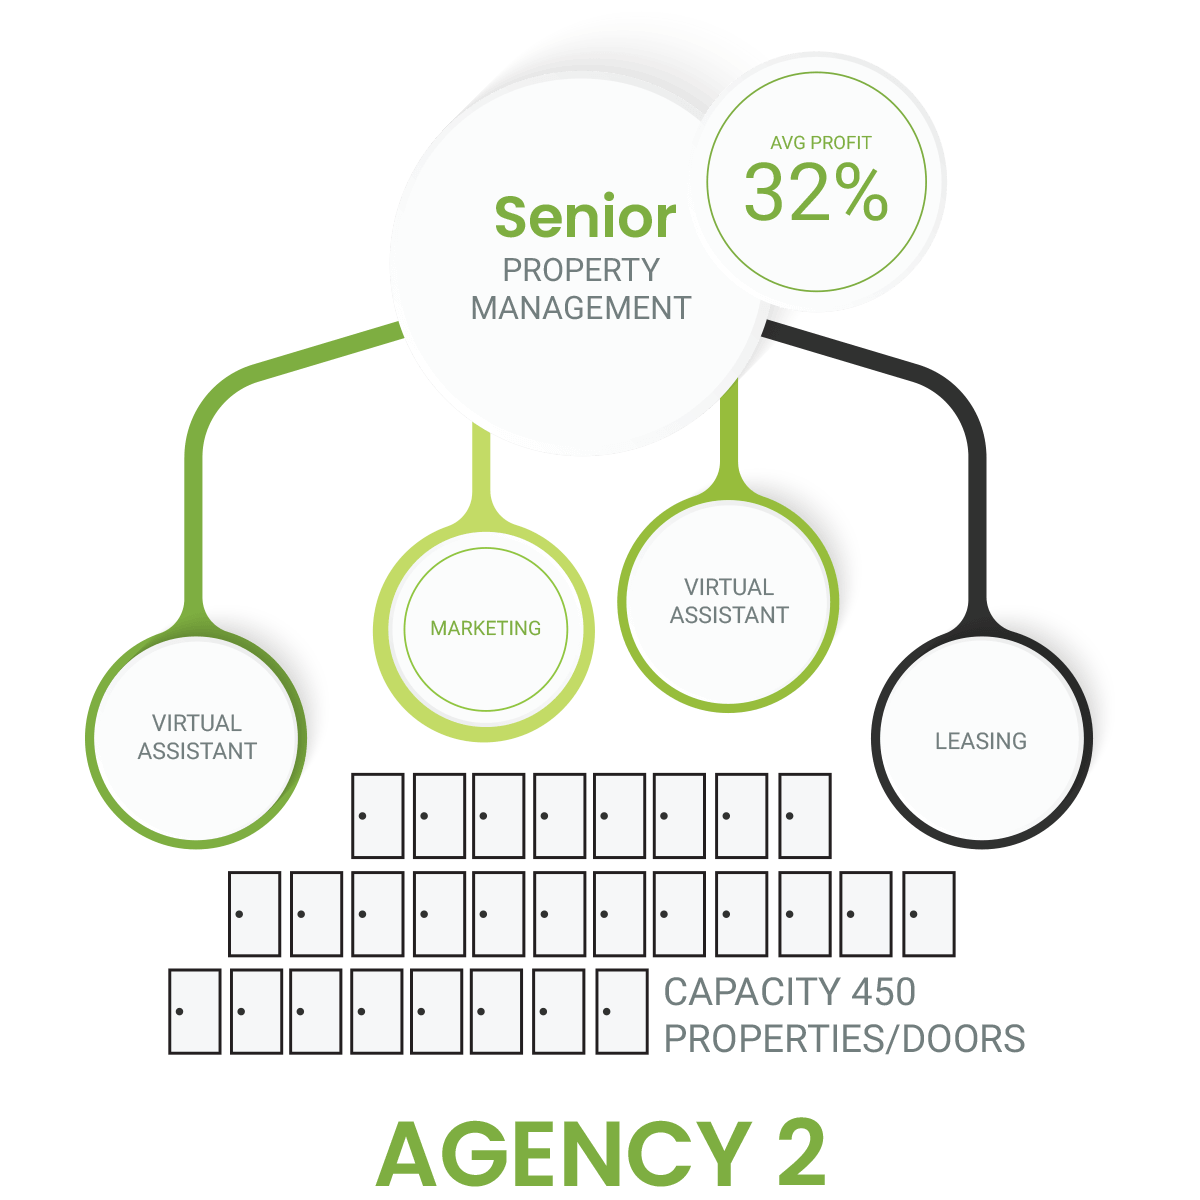 Senior Property Management capacity properties with real estate virtual assistant